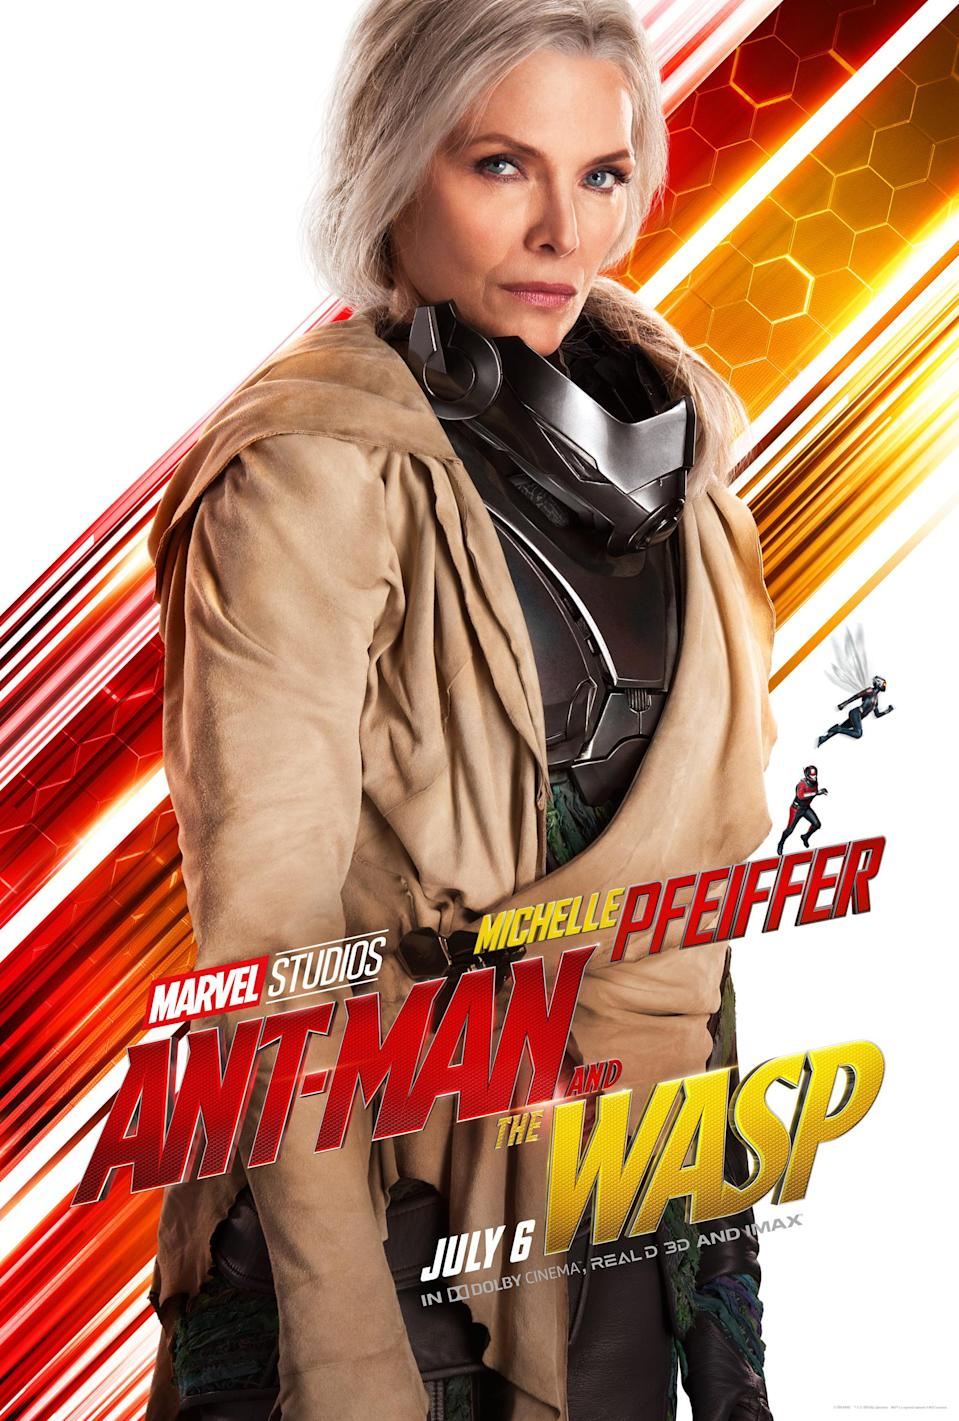 Michelle Pfeiffer in <i>Ant-Man and the Wasp</i>. (Image: Marvel)